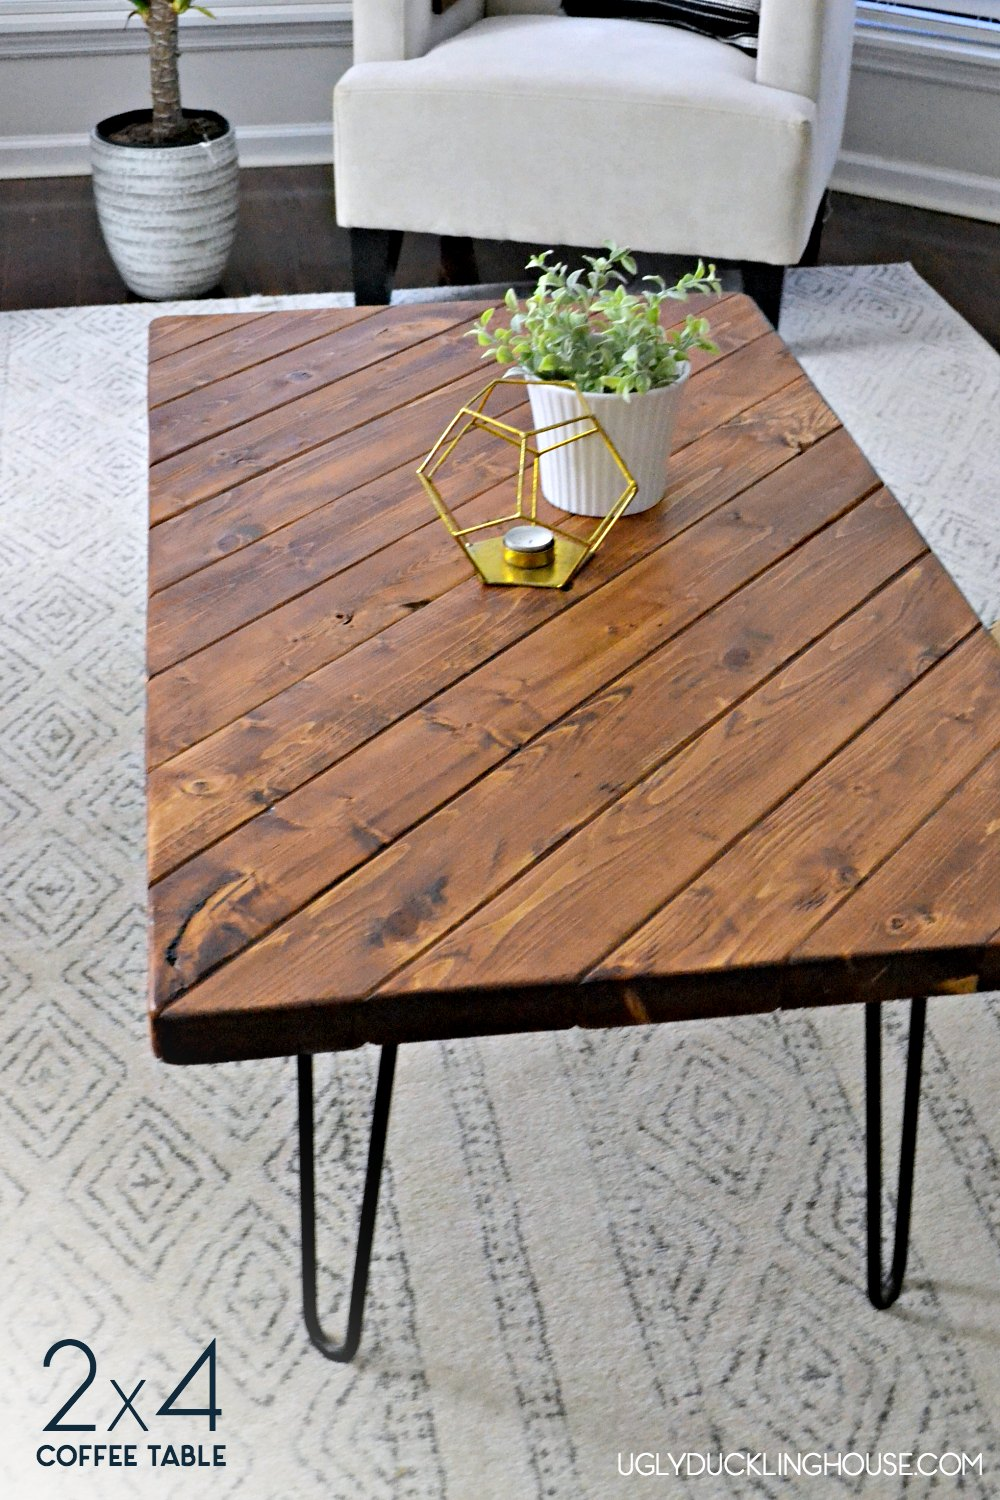 remodelaholic | 20 easy diy 2x4 wood projects